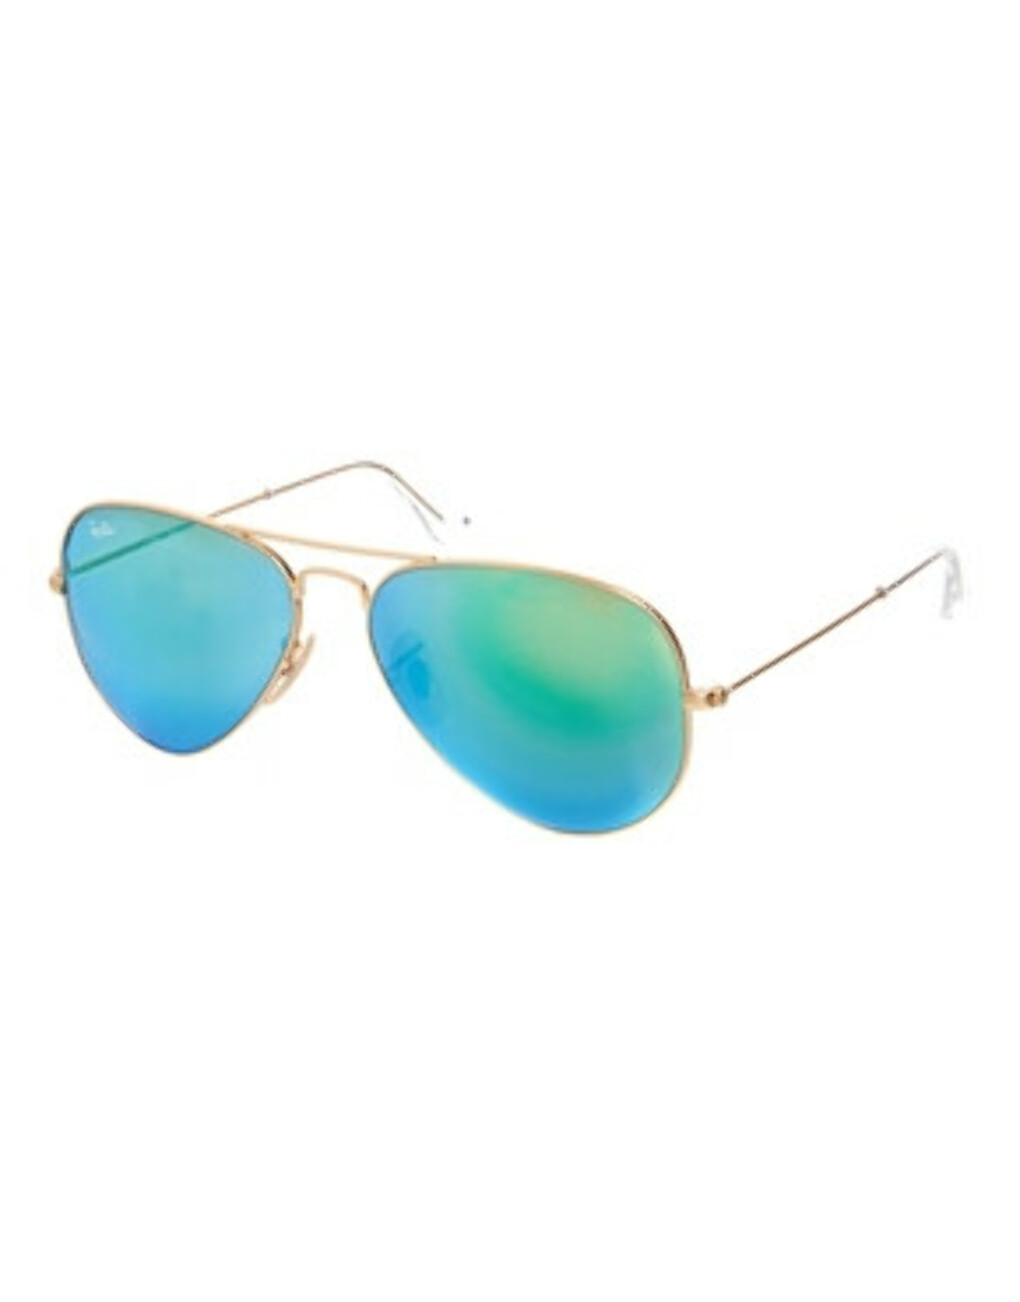 Ray-Ban Green Mirrored Aviator Sunglasses